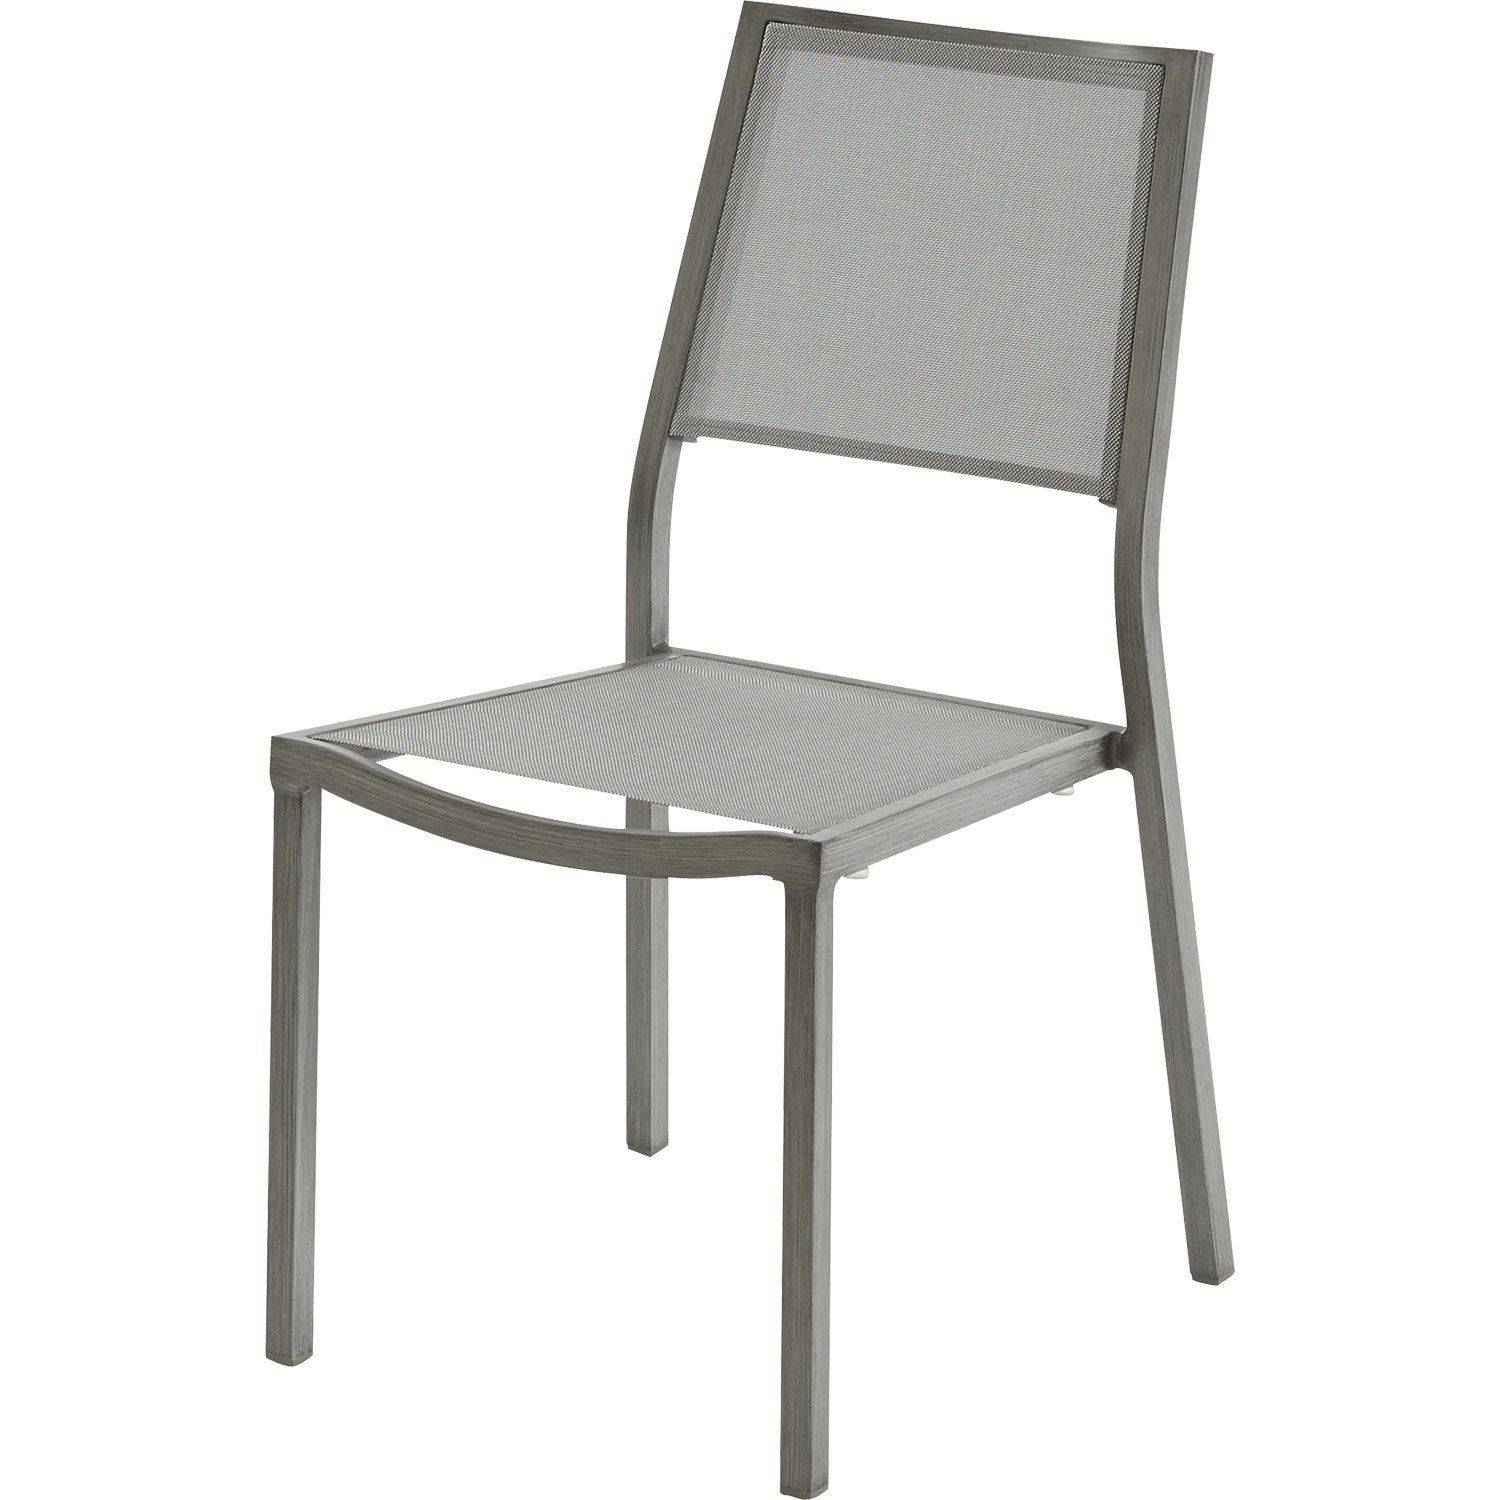 Chaise aluminium jardin for Chaise salon de jardin aluminium